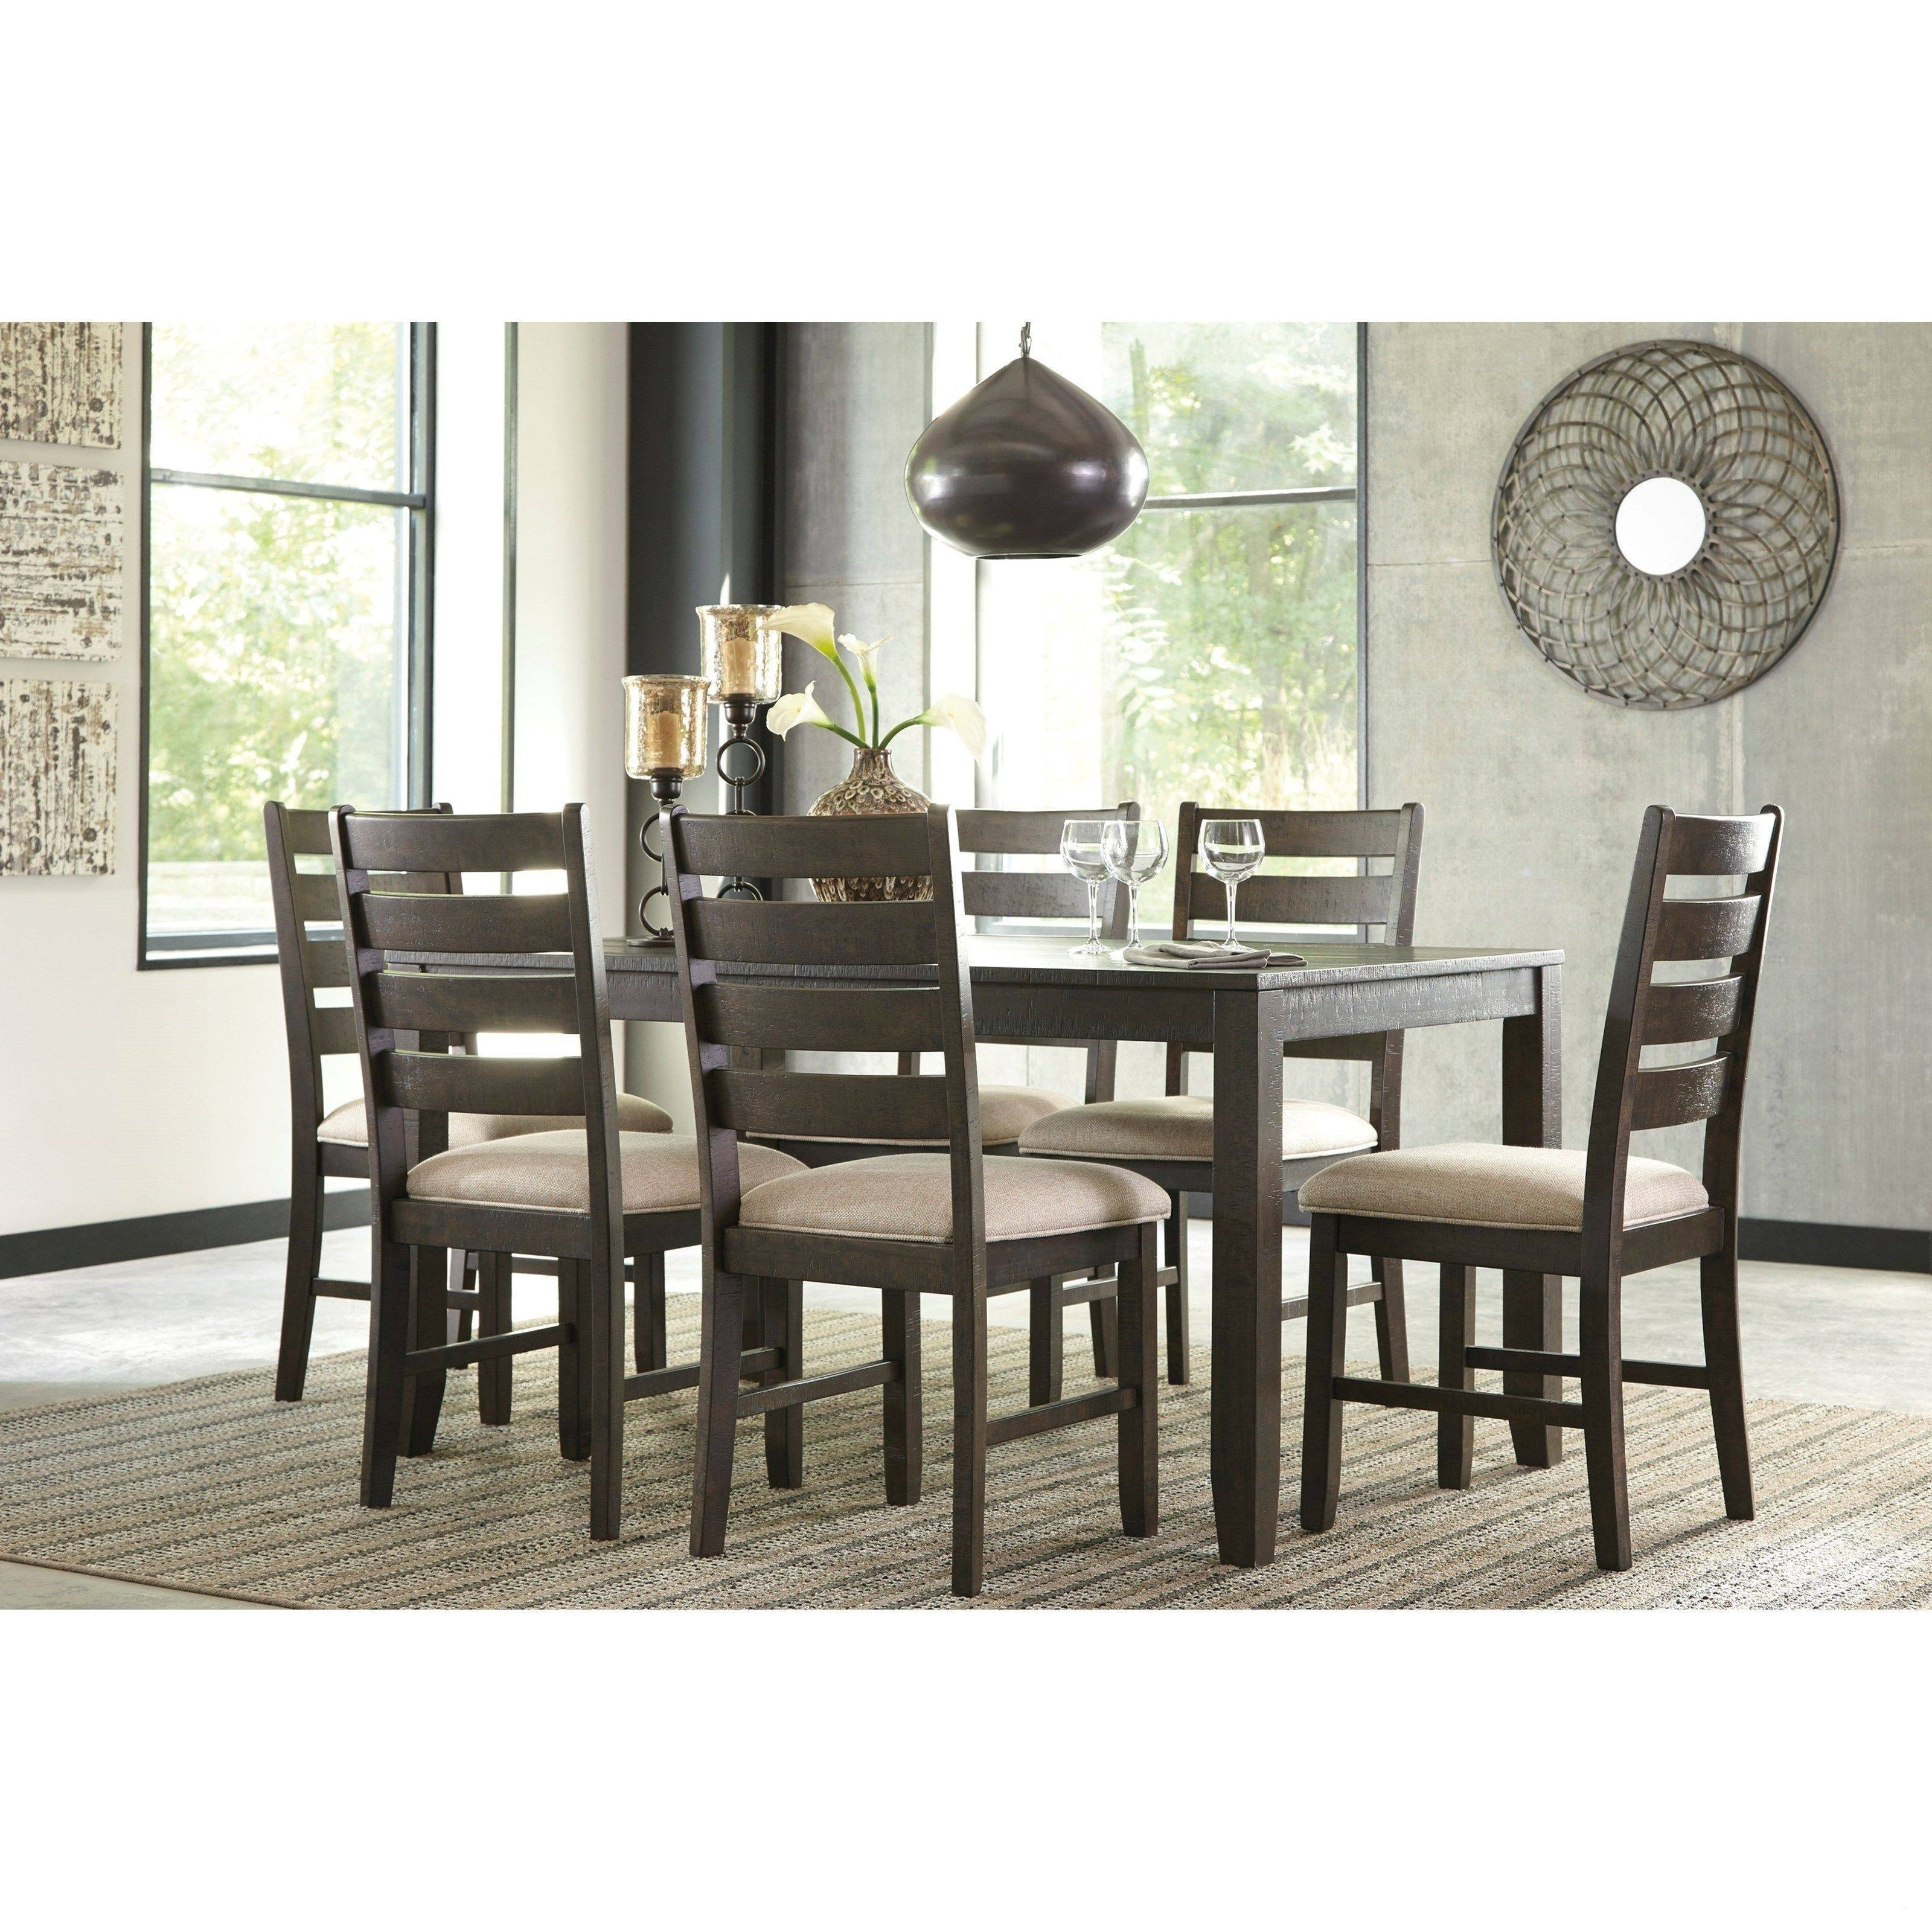 Most Current Cheap 6 Seater Dining Tables And Chairs Inside The 28 Awesome 6 Seater Extendable Dining Table – Welovedandelion (View 16 of 25)